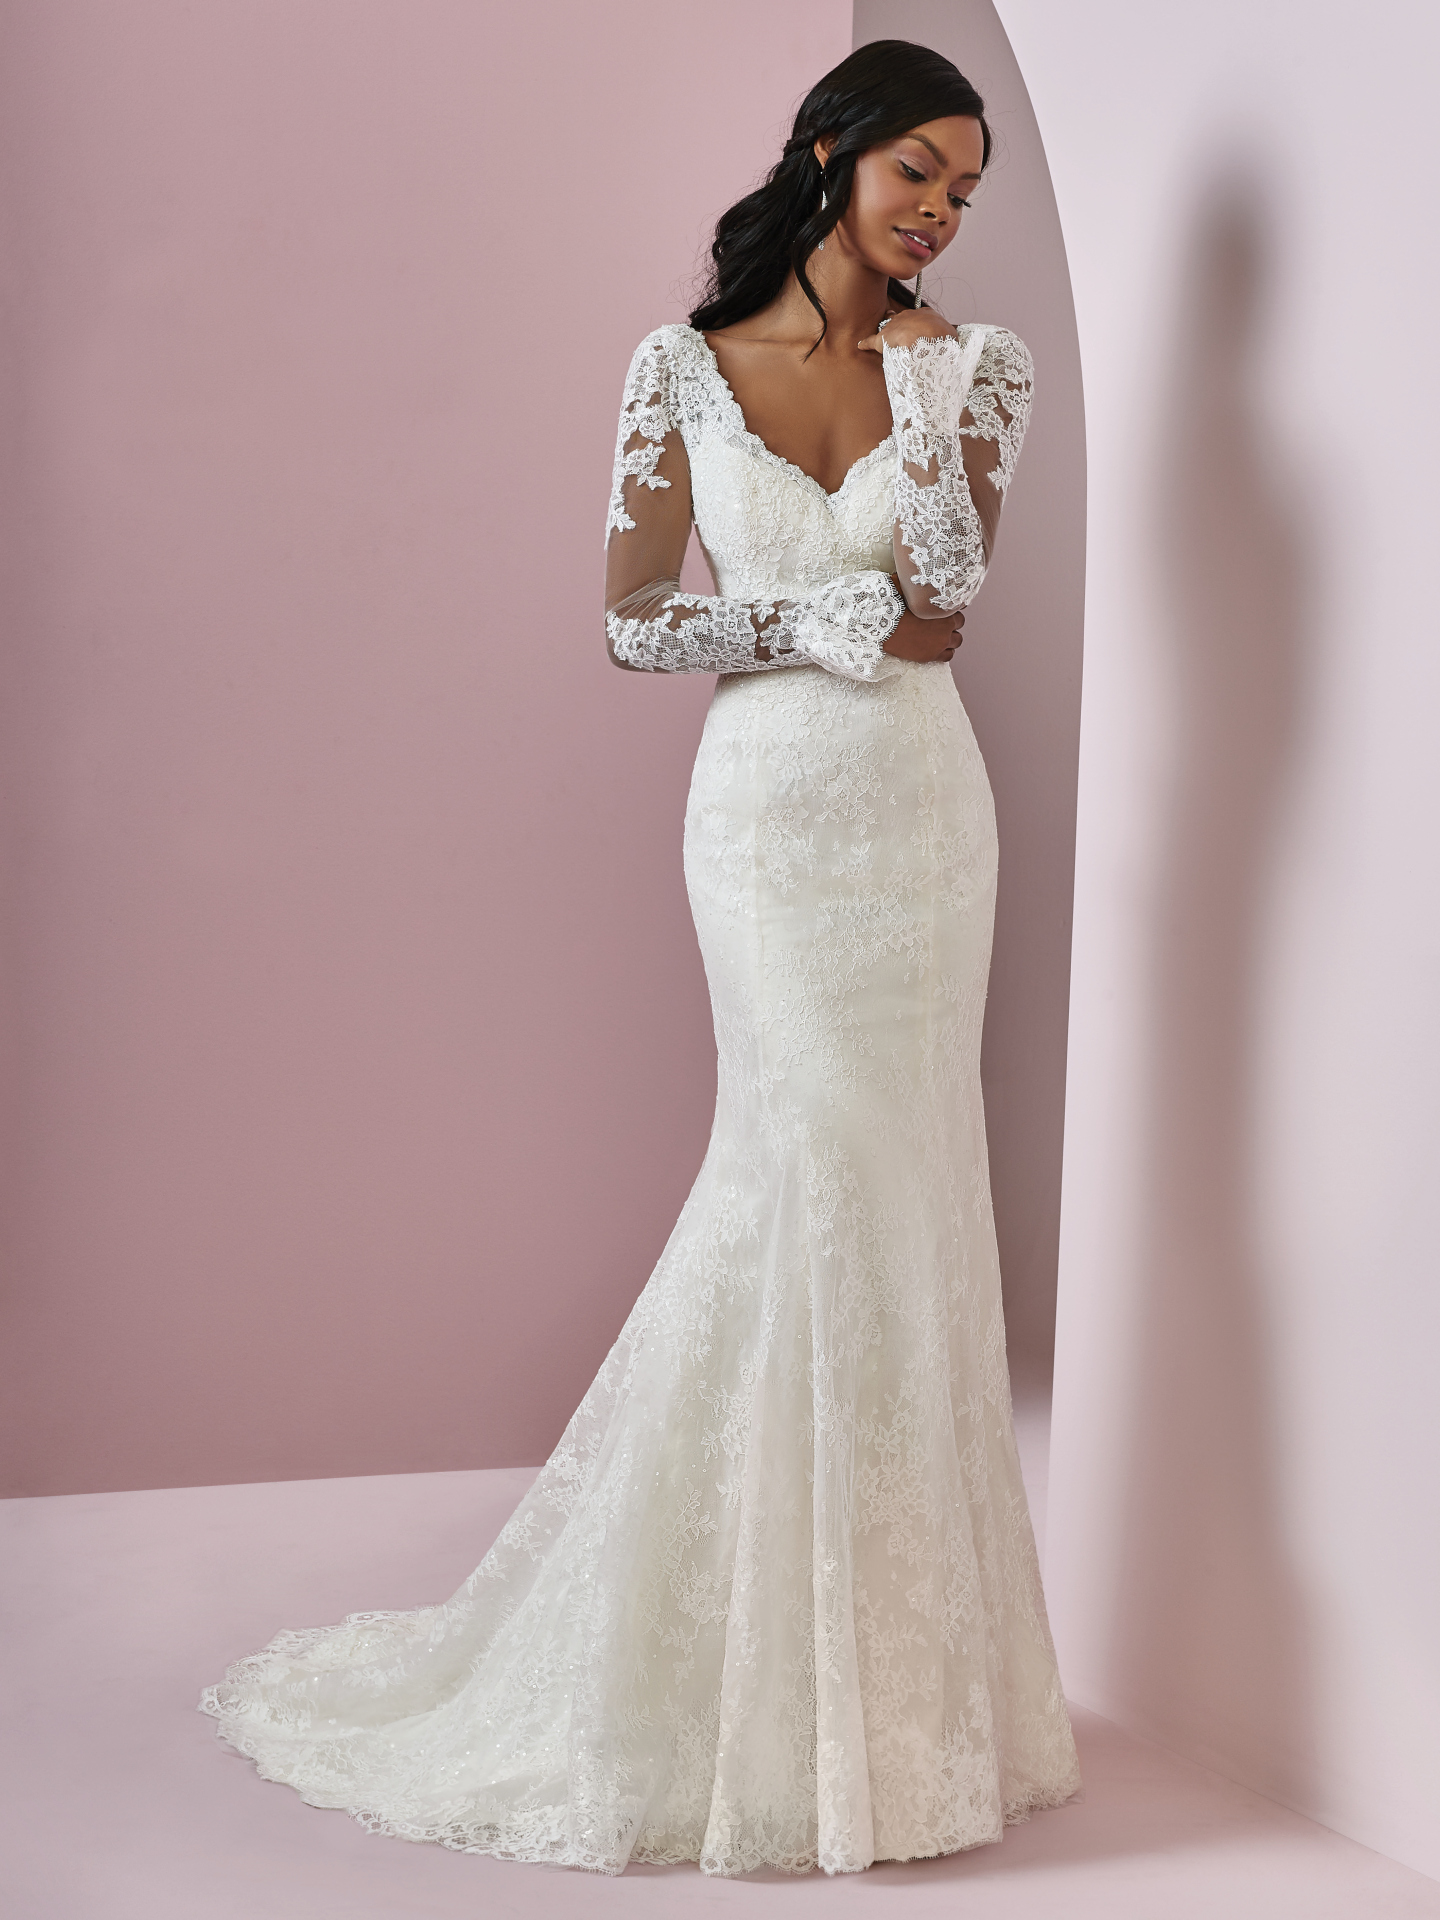 Favorite Sleeved Wedding dresses - Affordable gown with bell sleeves Bonnie by Rebecca Ingram